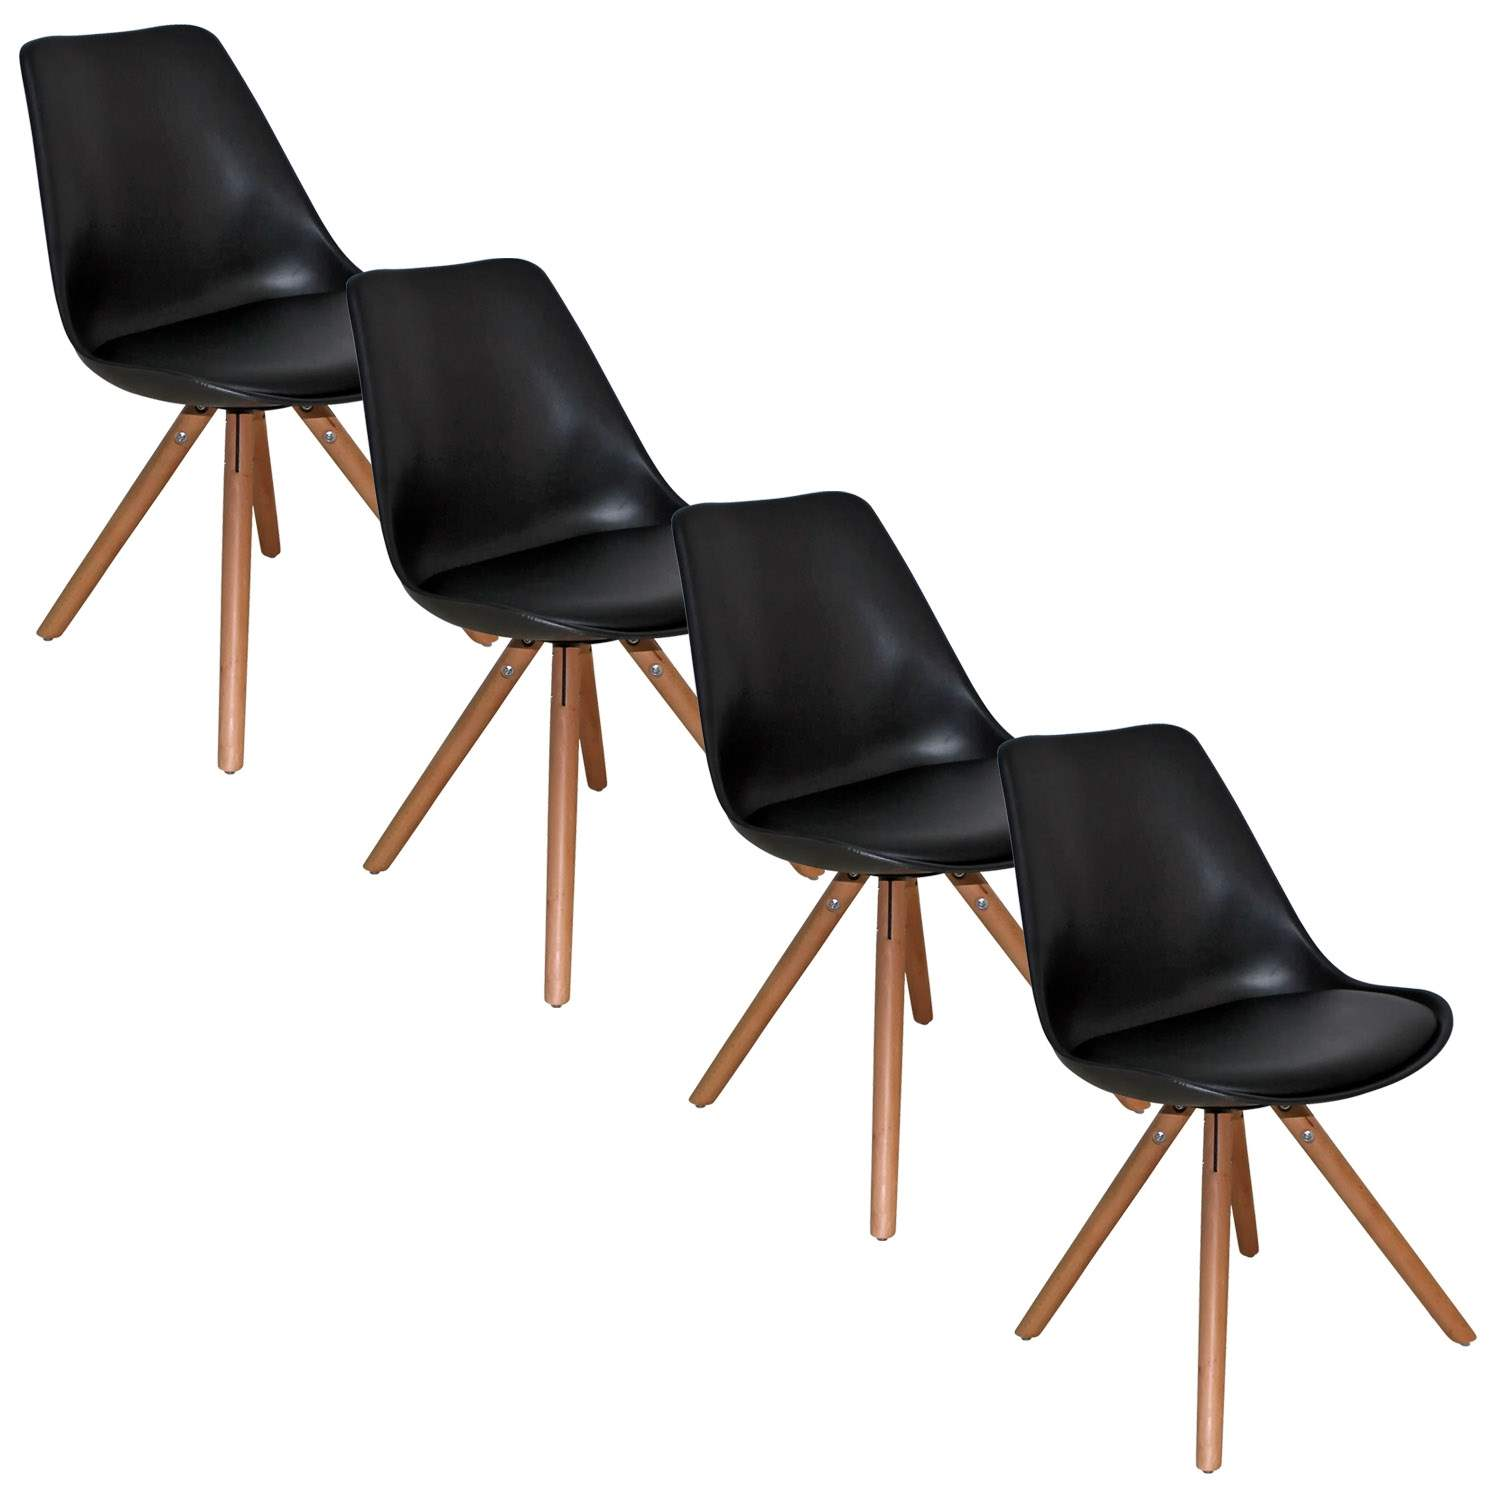 Deco in paris lot de 4 chaises design noir velta velta for Chaise noir design